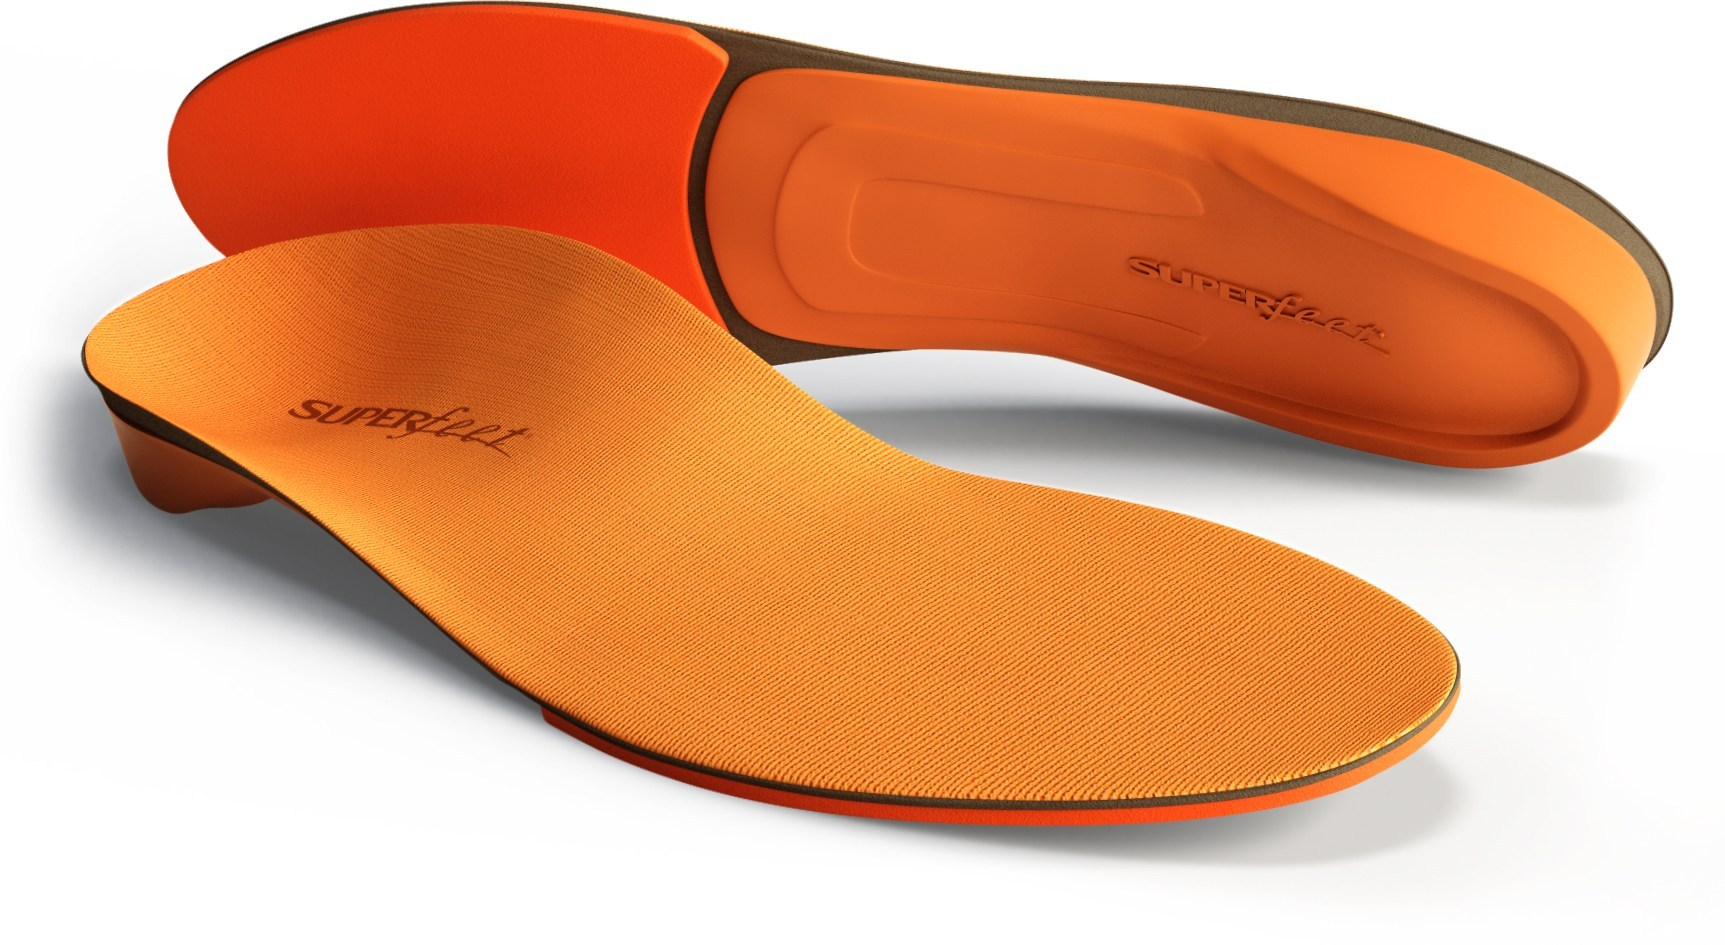 Superfeet Orange All-Purpose Cushion and Support Insoles